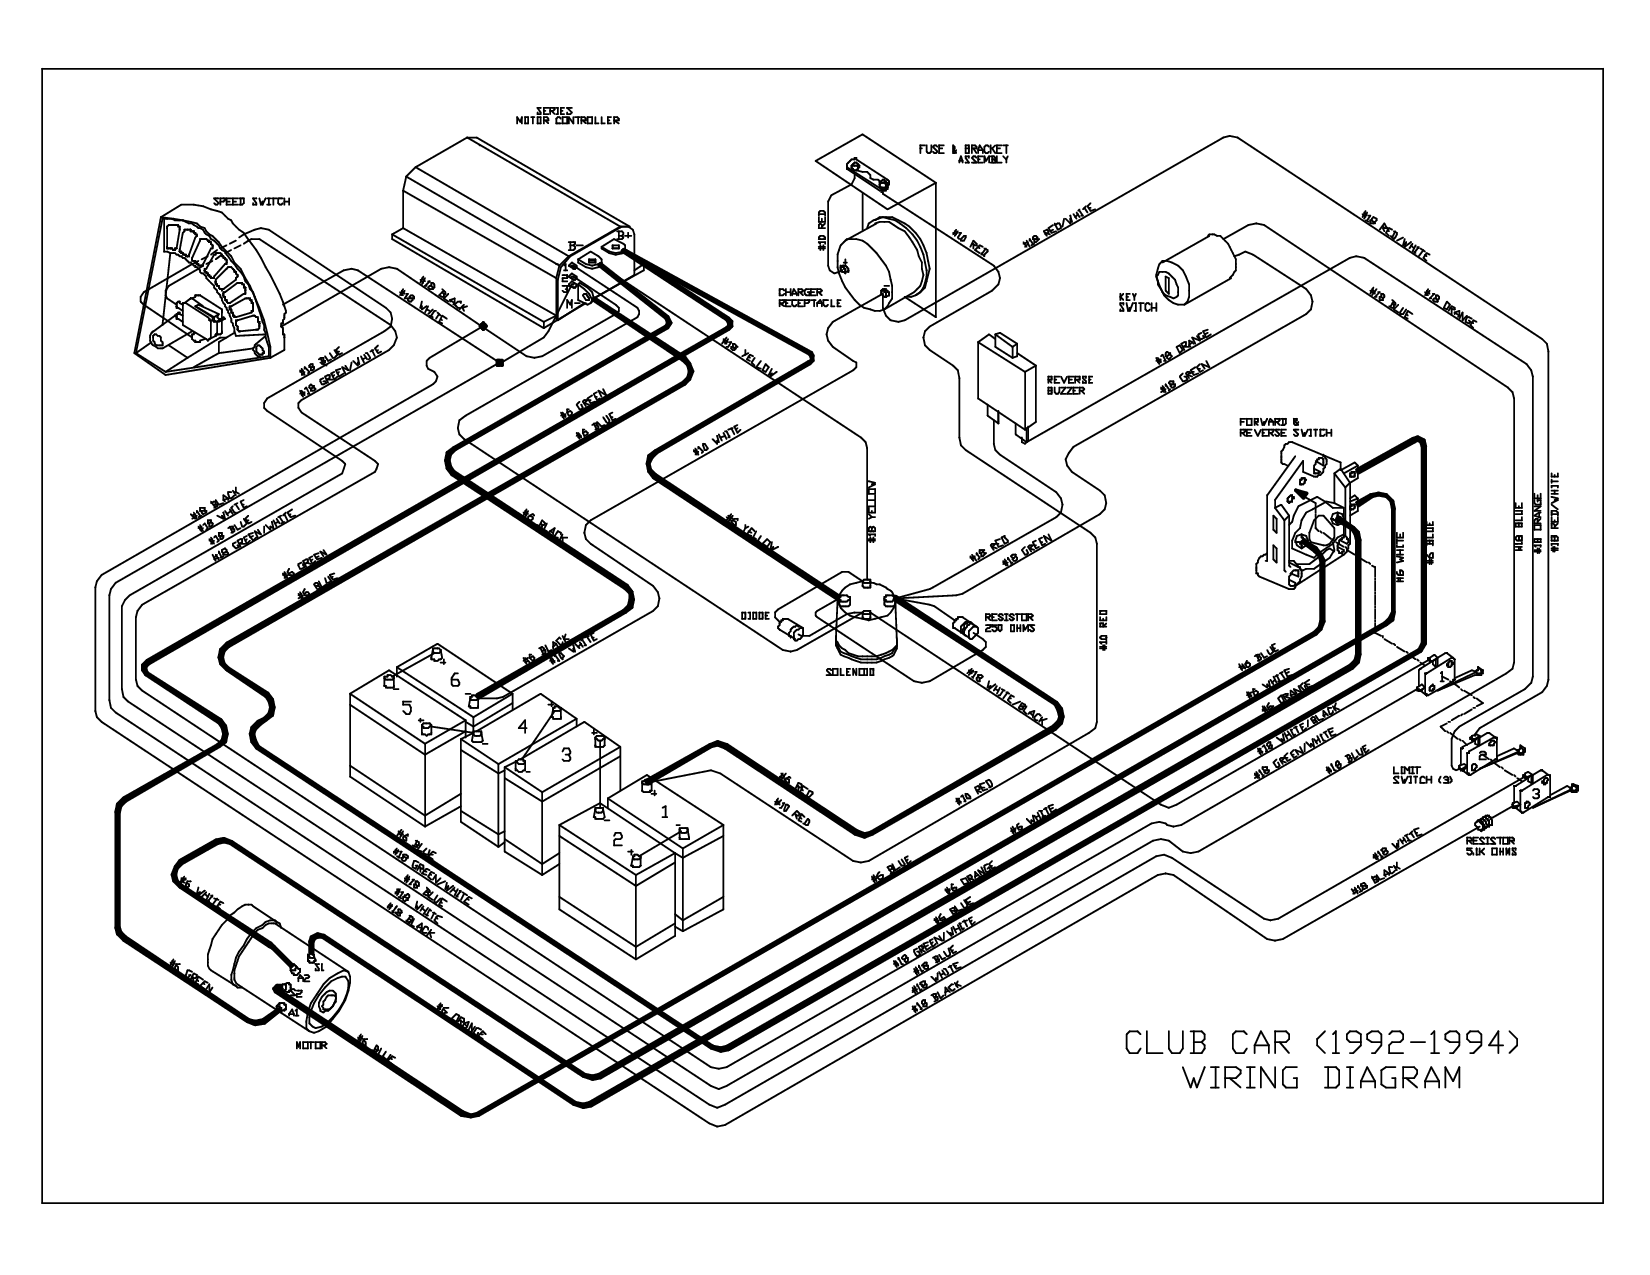 Wiring Diagram Cars The Readingrat Net At 36 Volt Club Car Inside On Club Car Wiring Diagram 36 Volt In 2021 Ezgo Golf Cart Club Car Golf Cart Electric Golf Cart